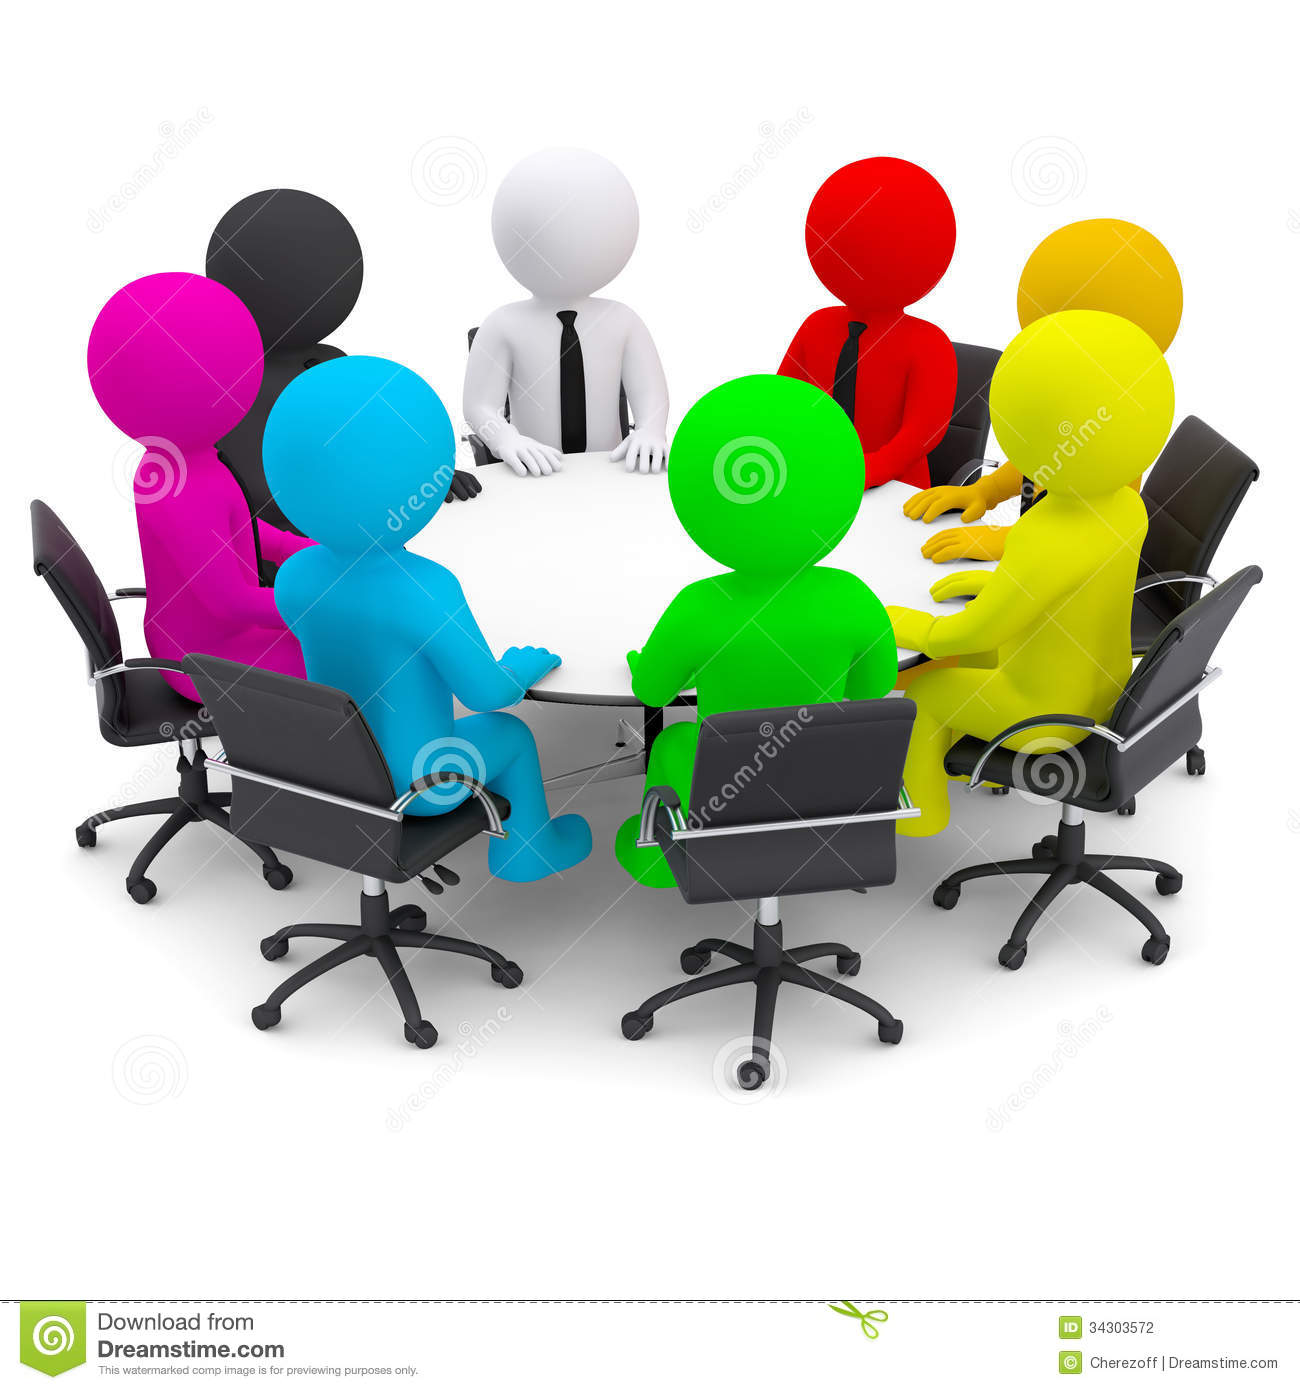 round table clipart. Royalty-Free Stock Photo Round Table Clipart